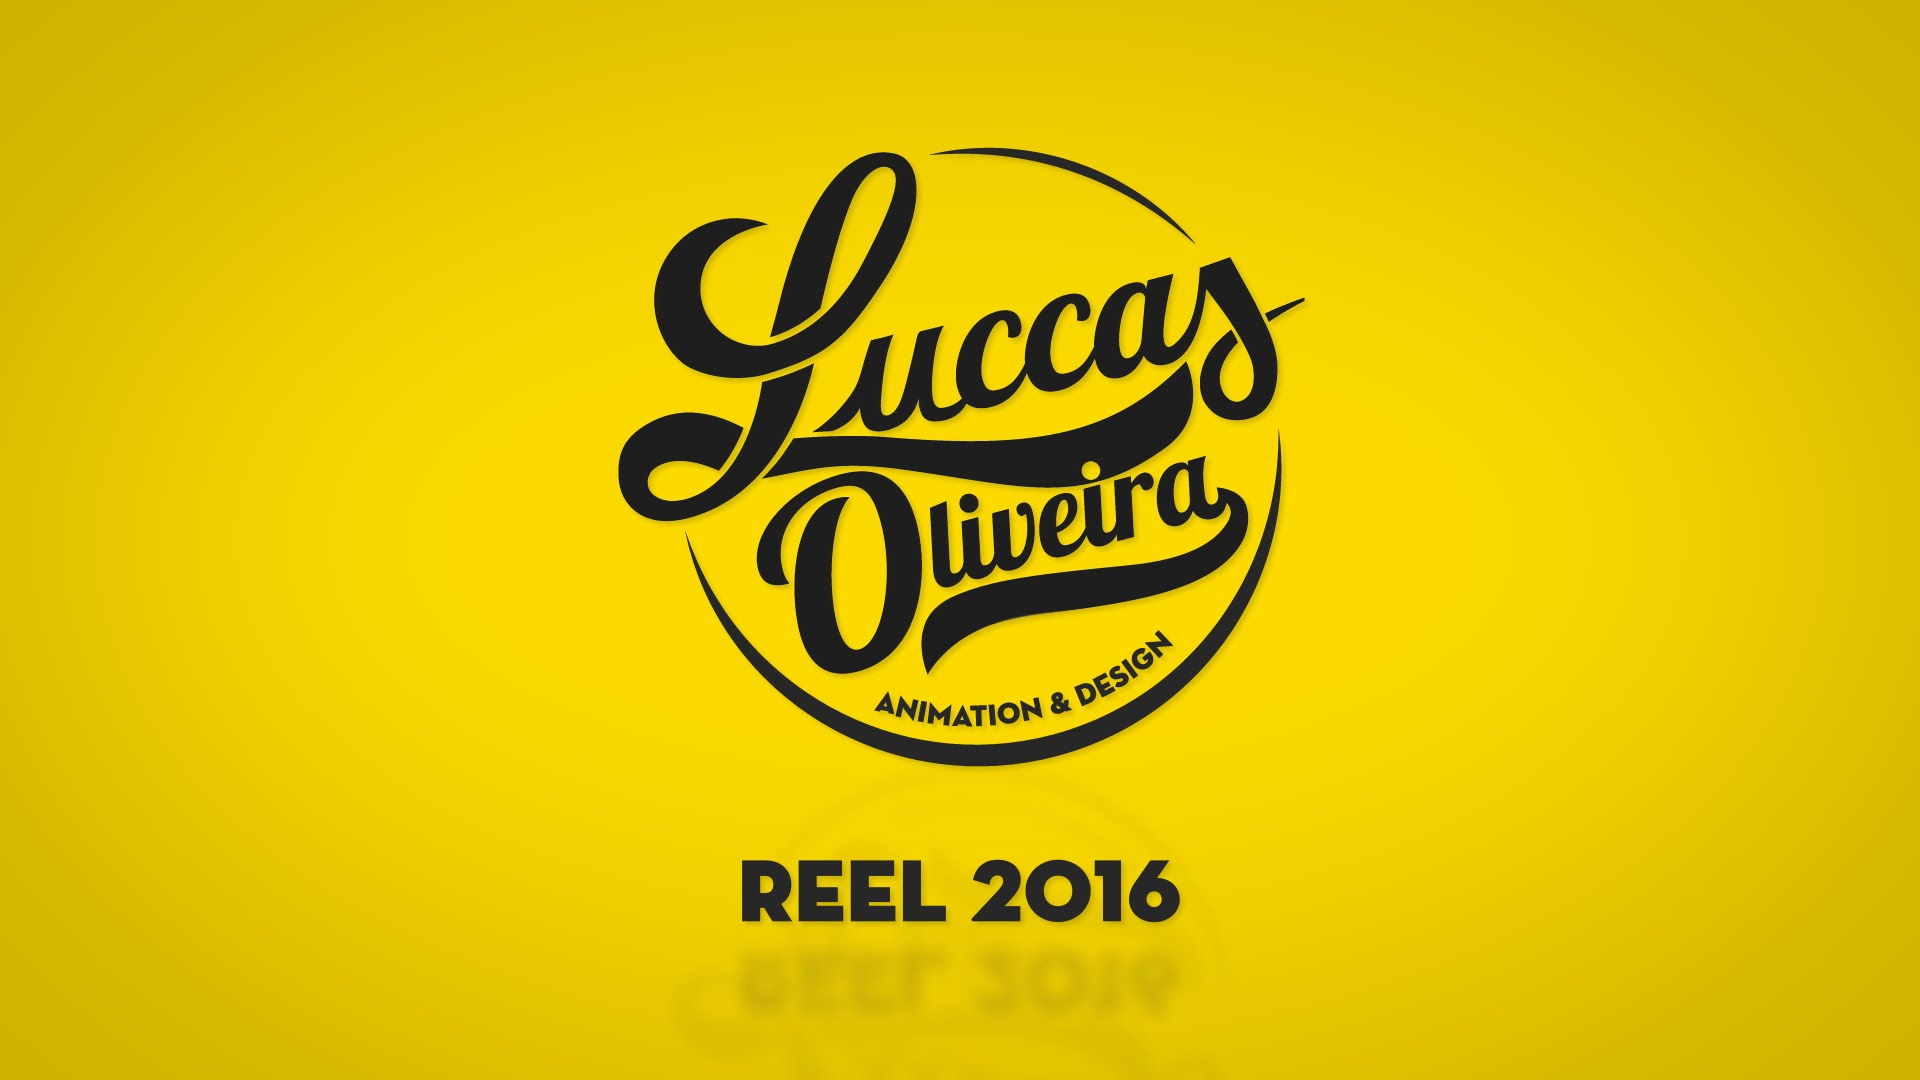 Luccas Oliveira – Demo Reel 2016